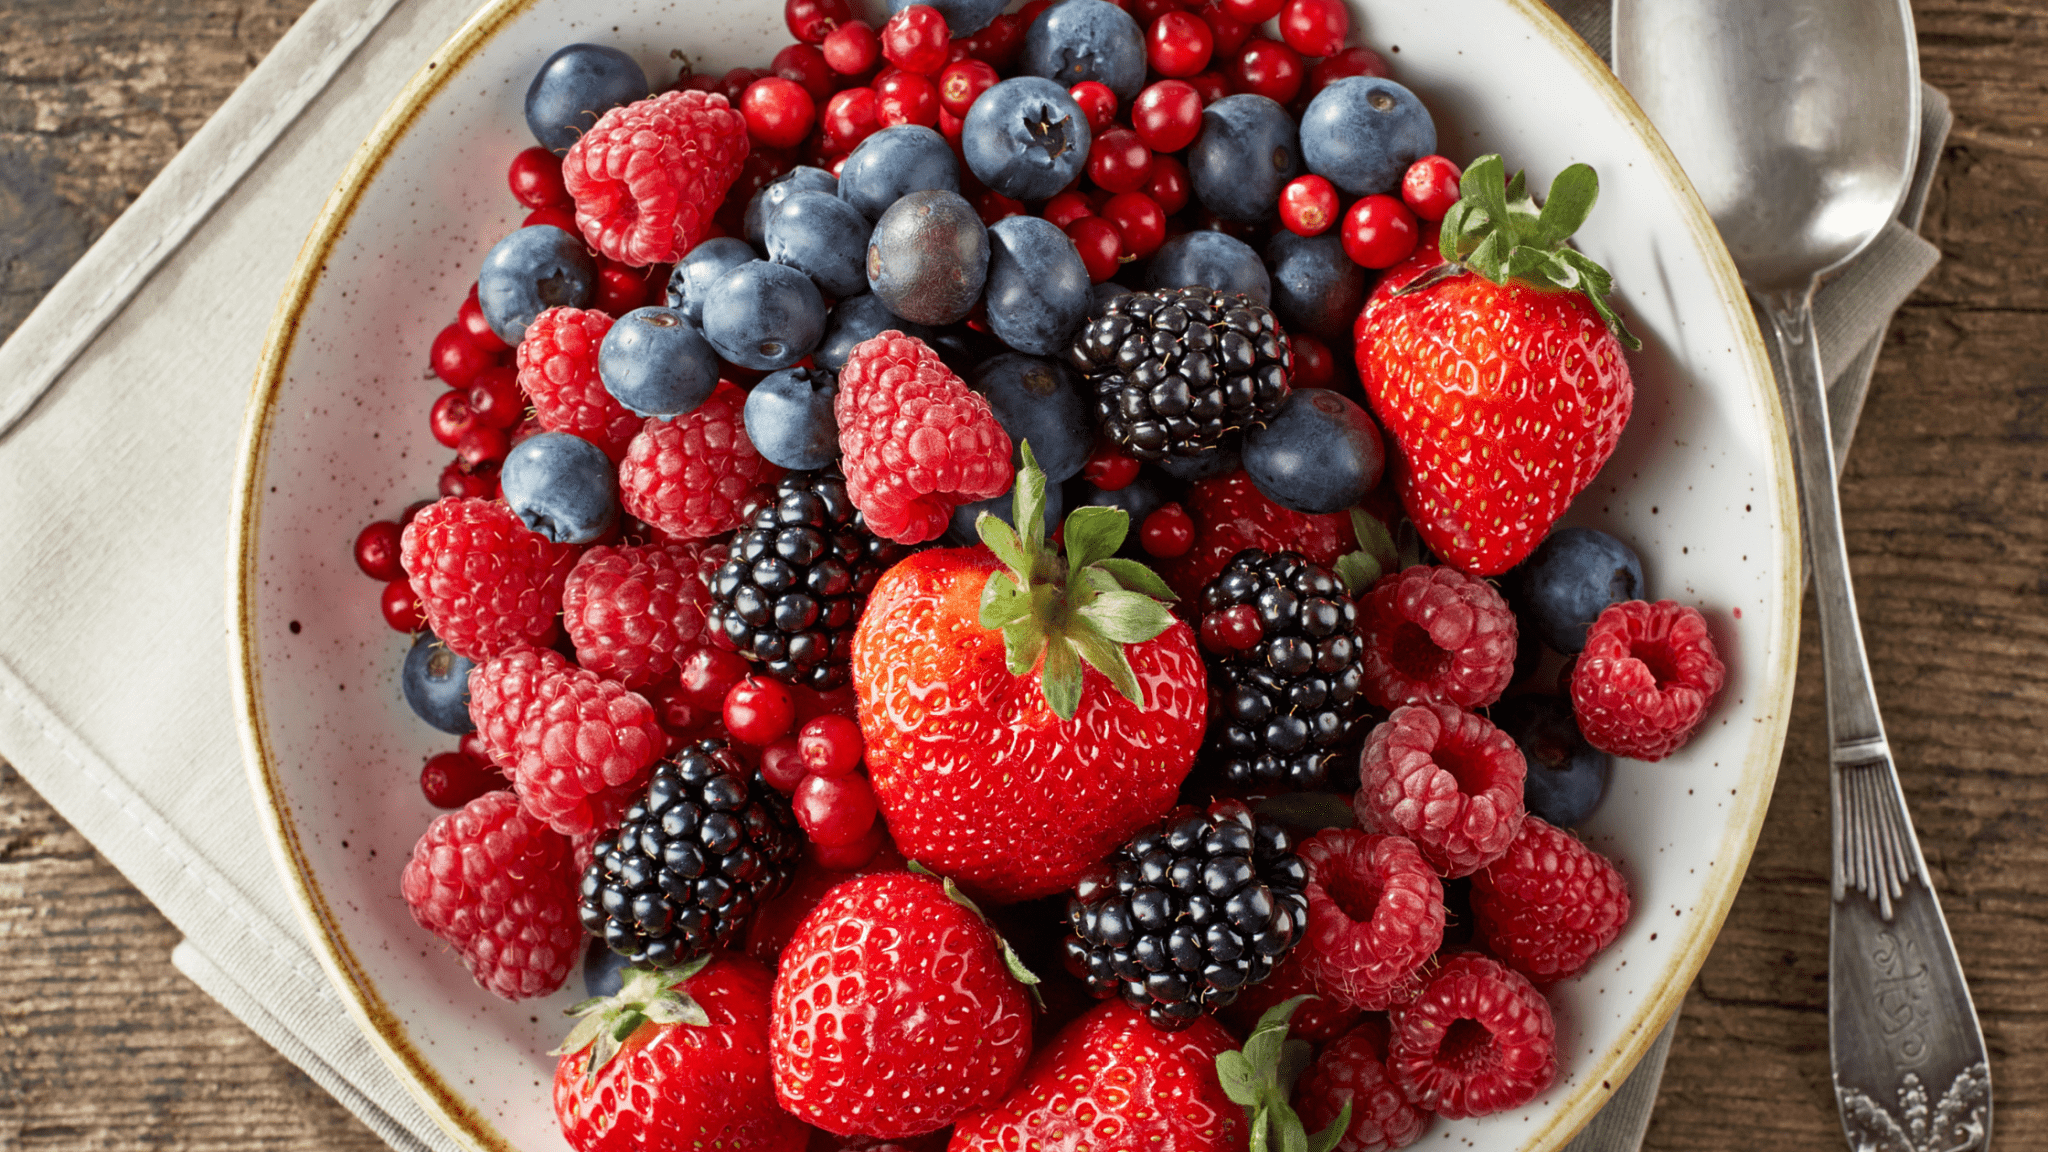 What Fruit Can I Eat on Keto